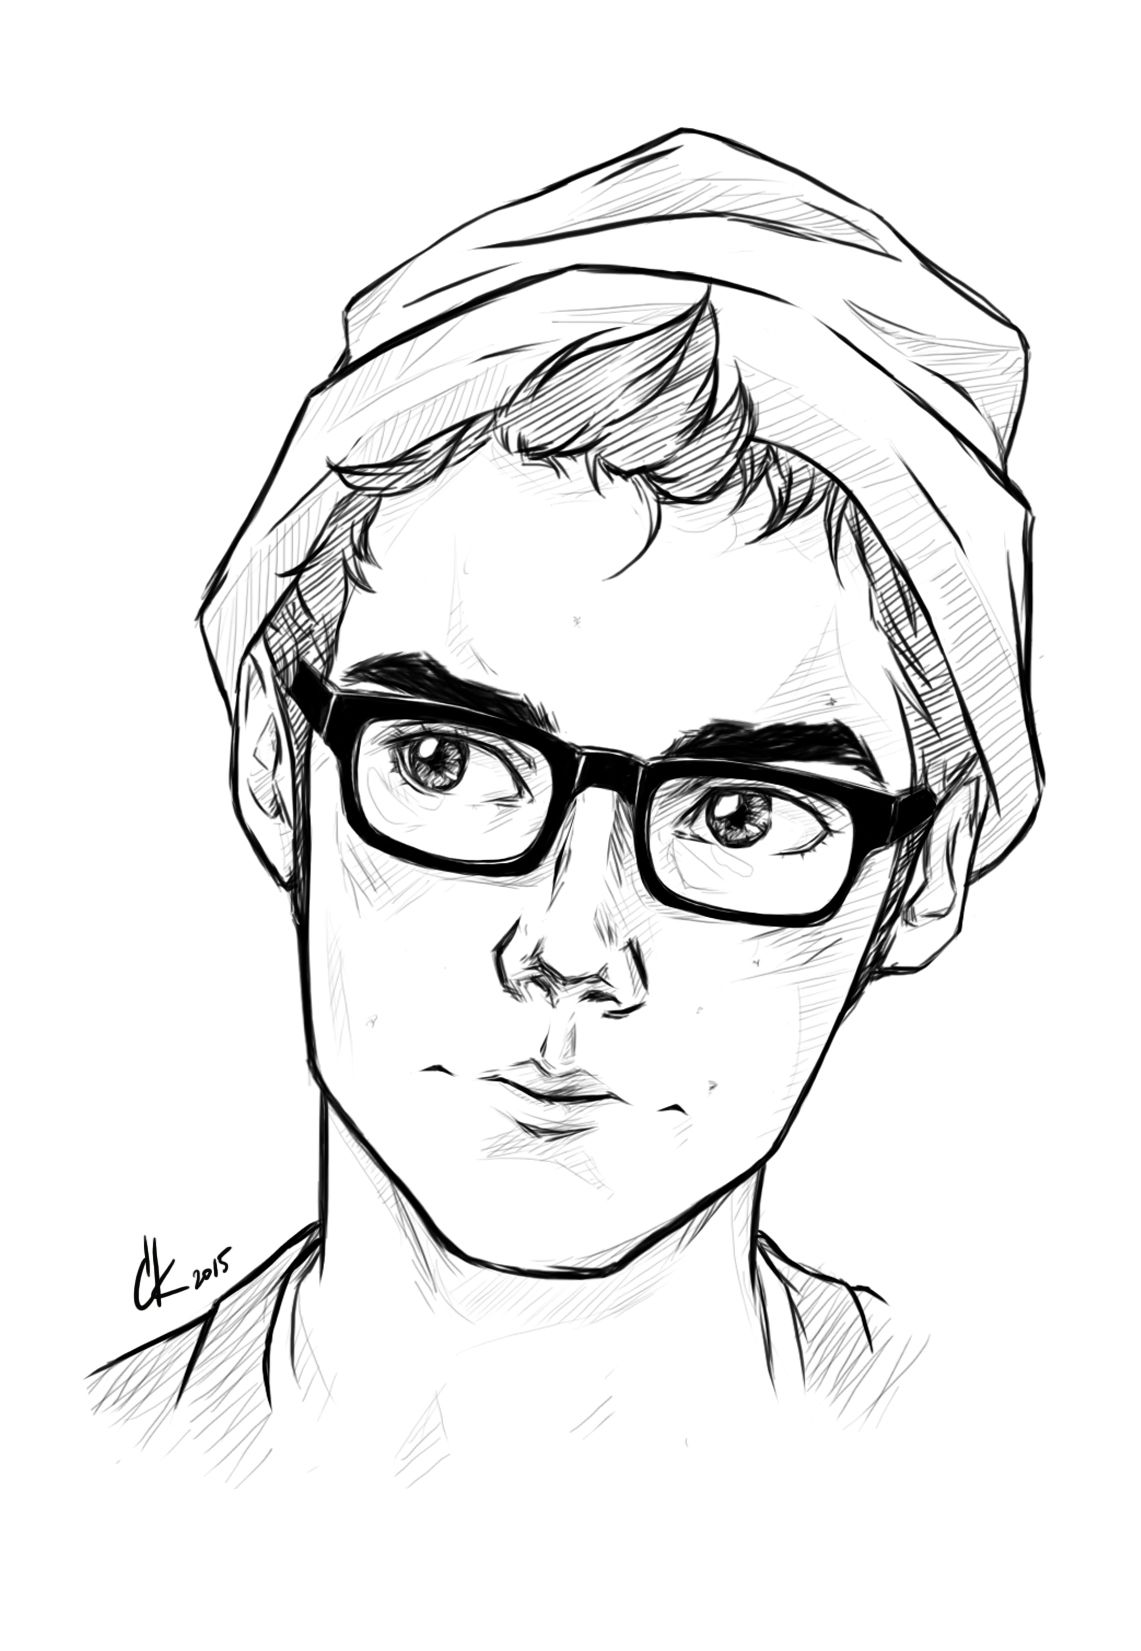 Cute Boy Sketch